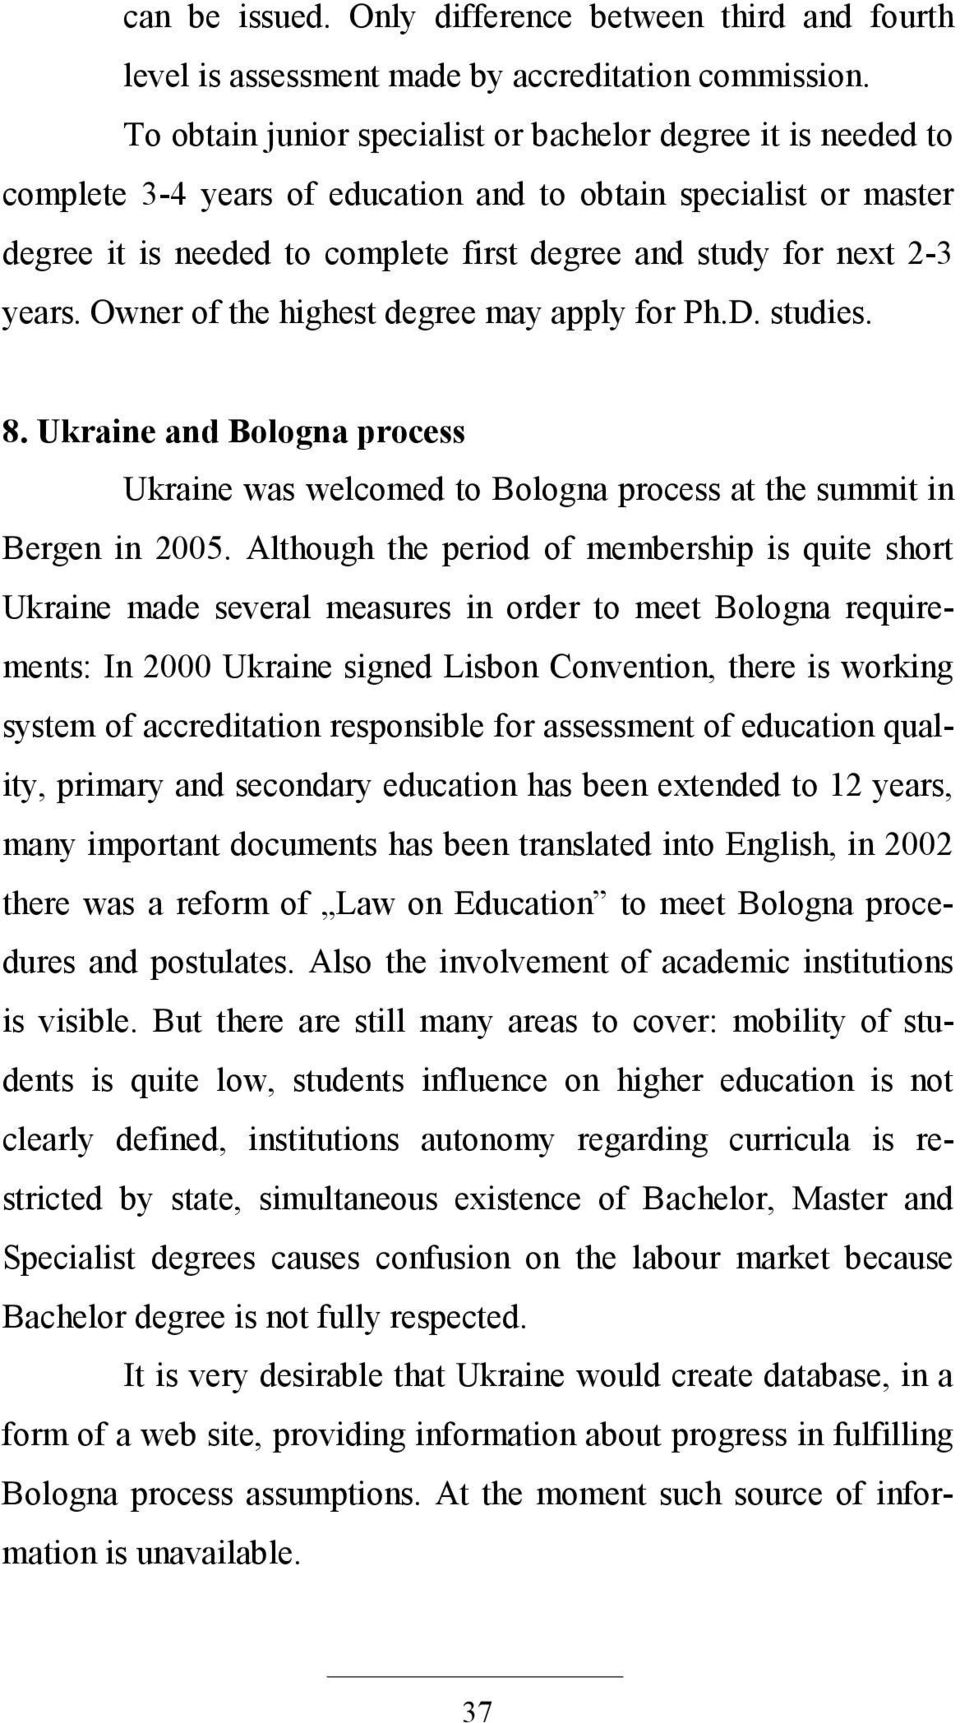 years. Owner of the highest degree may apply for Ph.D. studies. 8. Ukraine and Bologna process Ukraine was welcomed to Bologna process at the summit in Bergen in 2005.